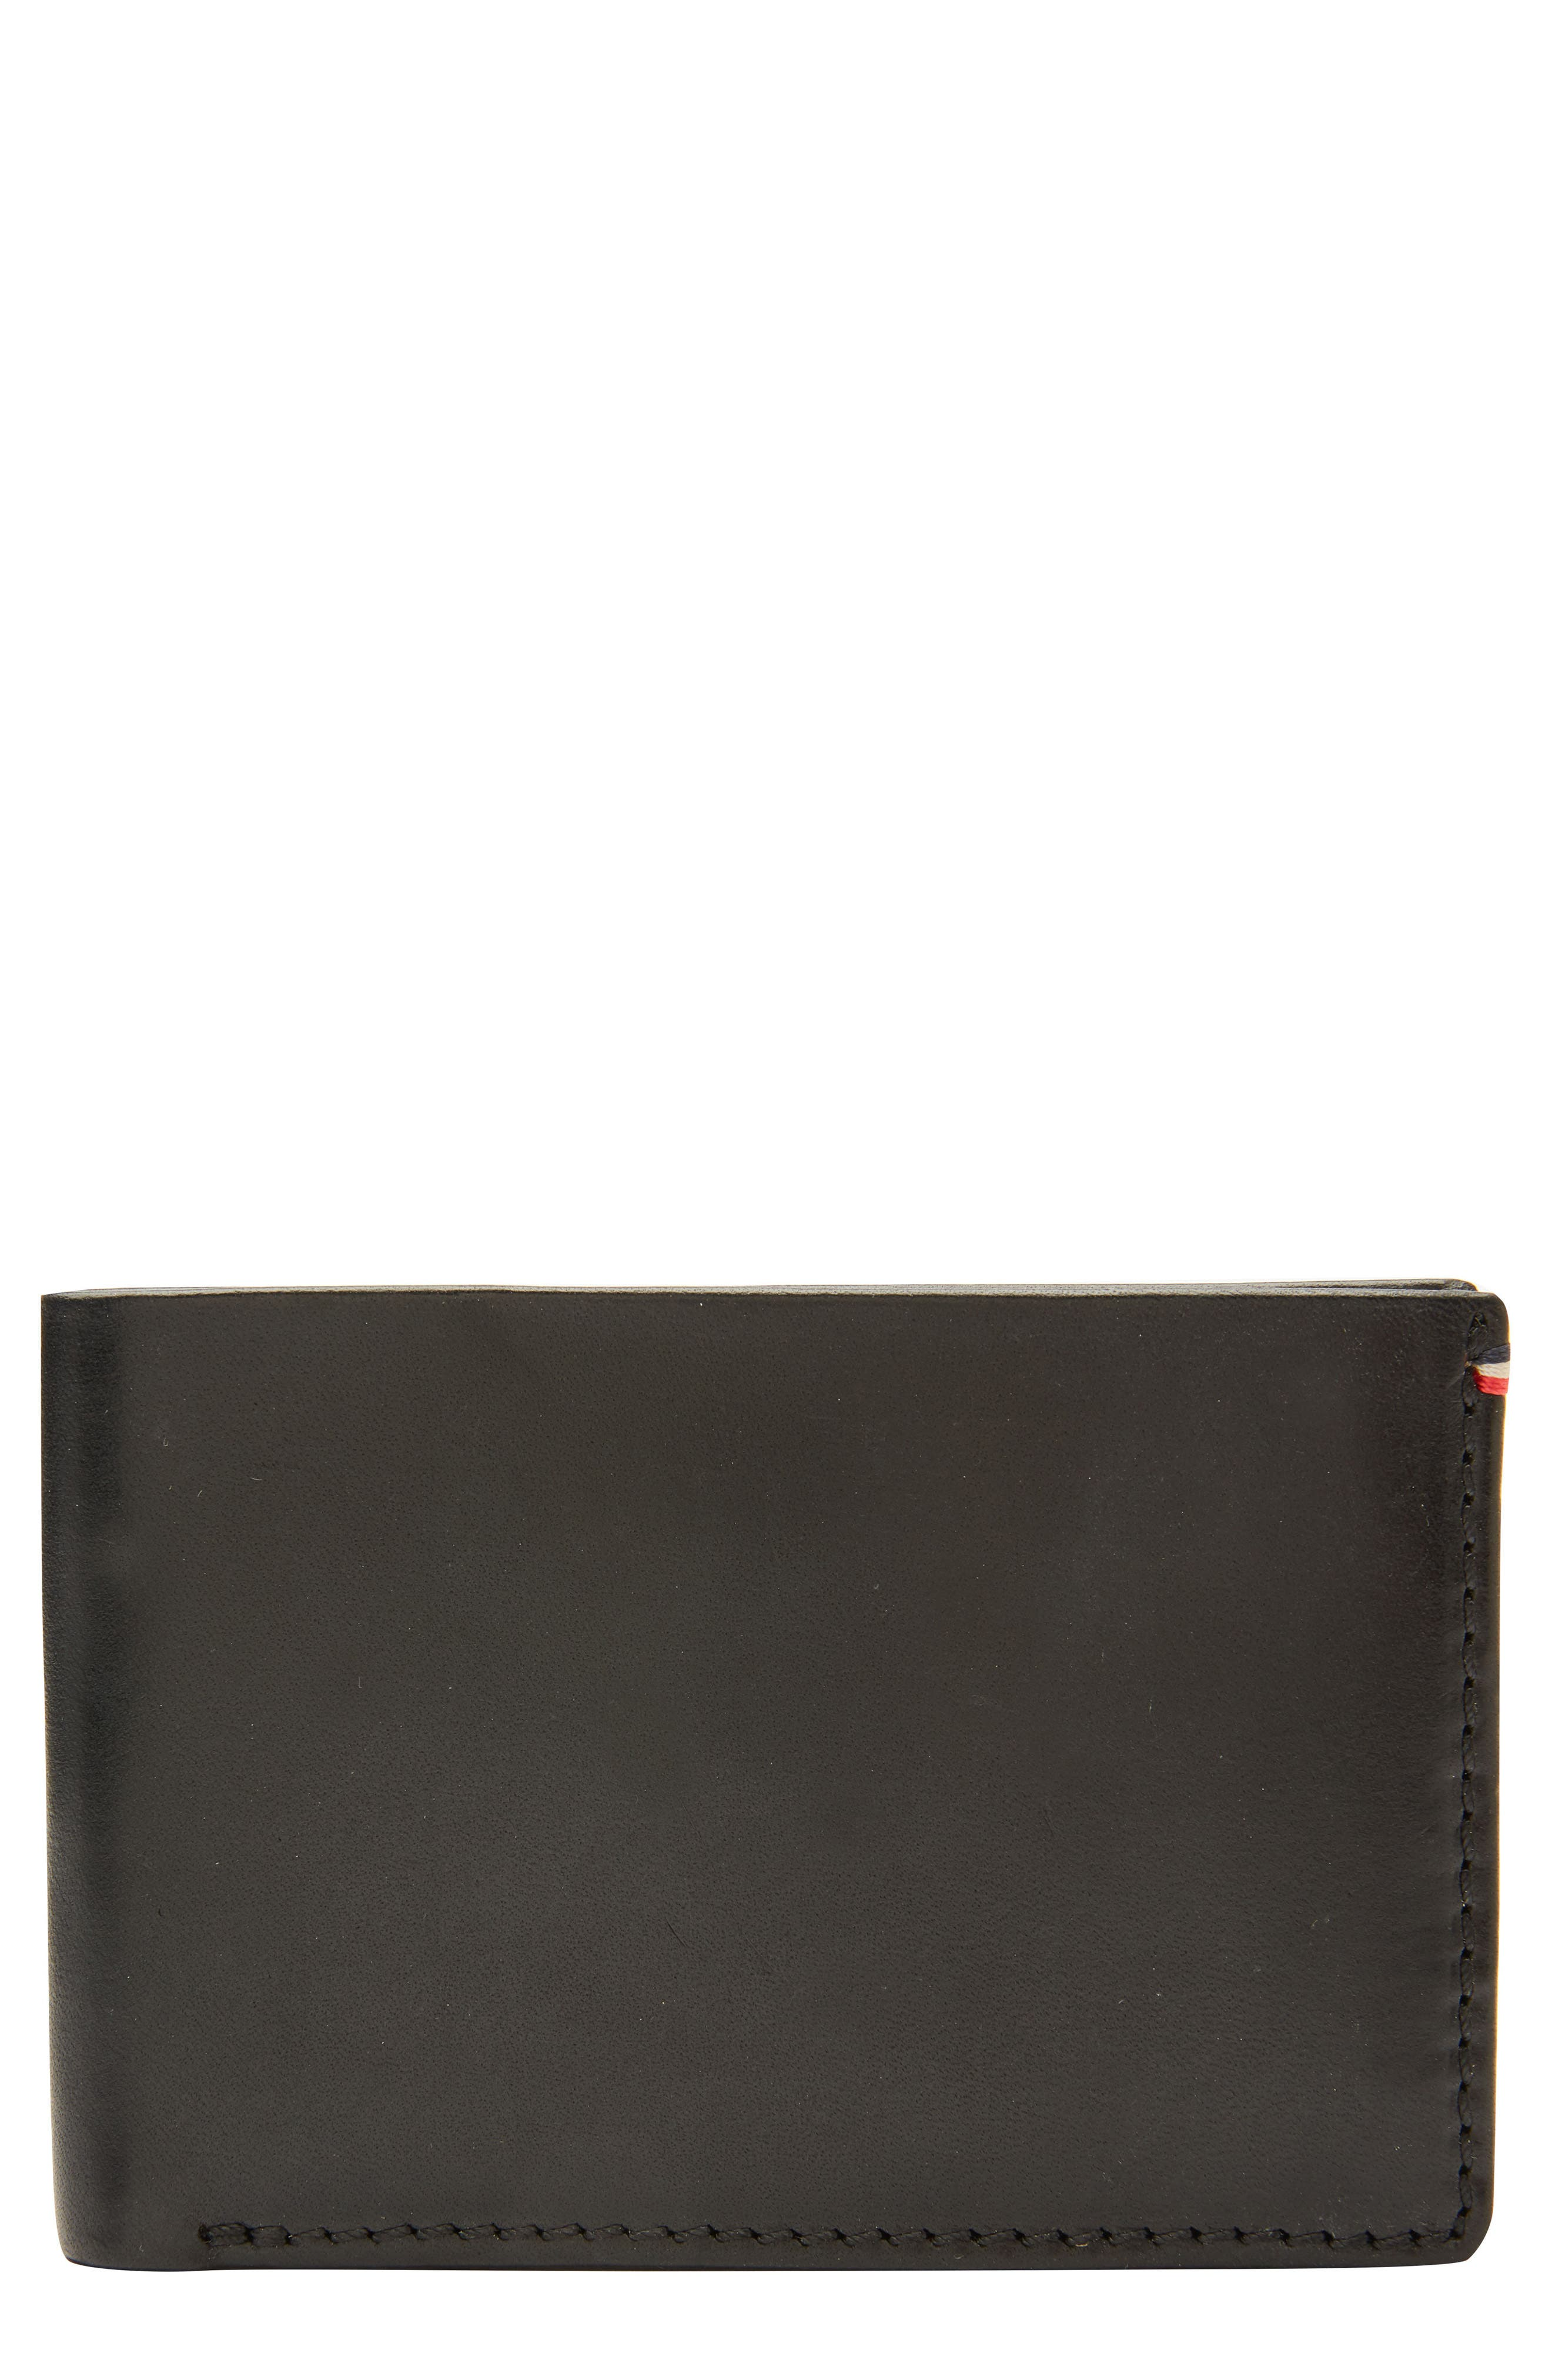 Core Slim Bifold Leather Wallet,                         Main,                         color, 001